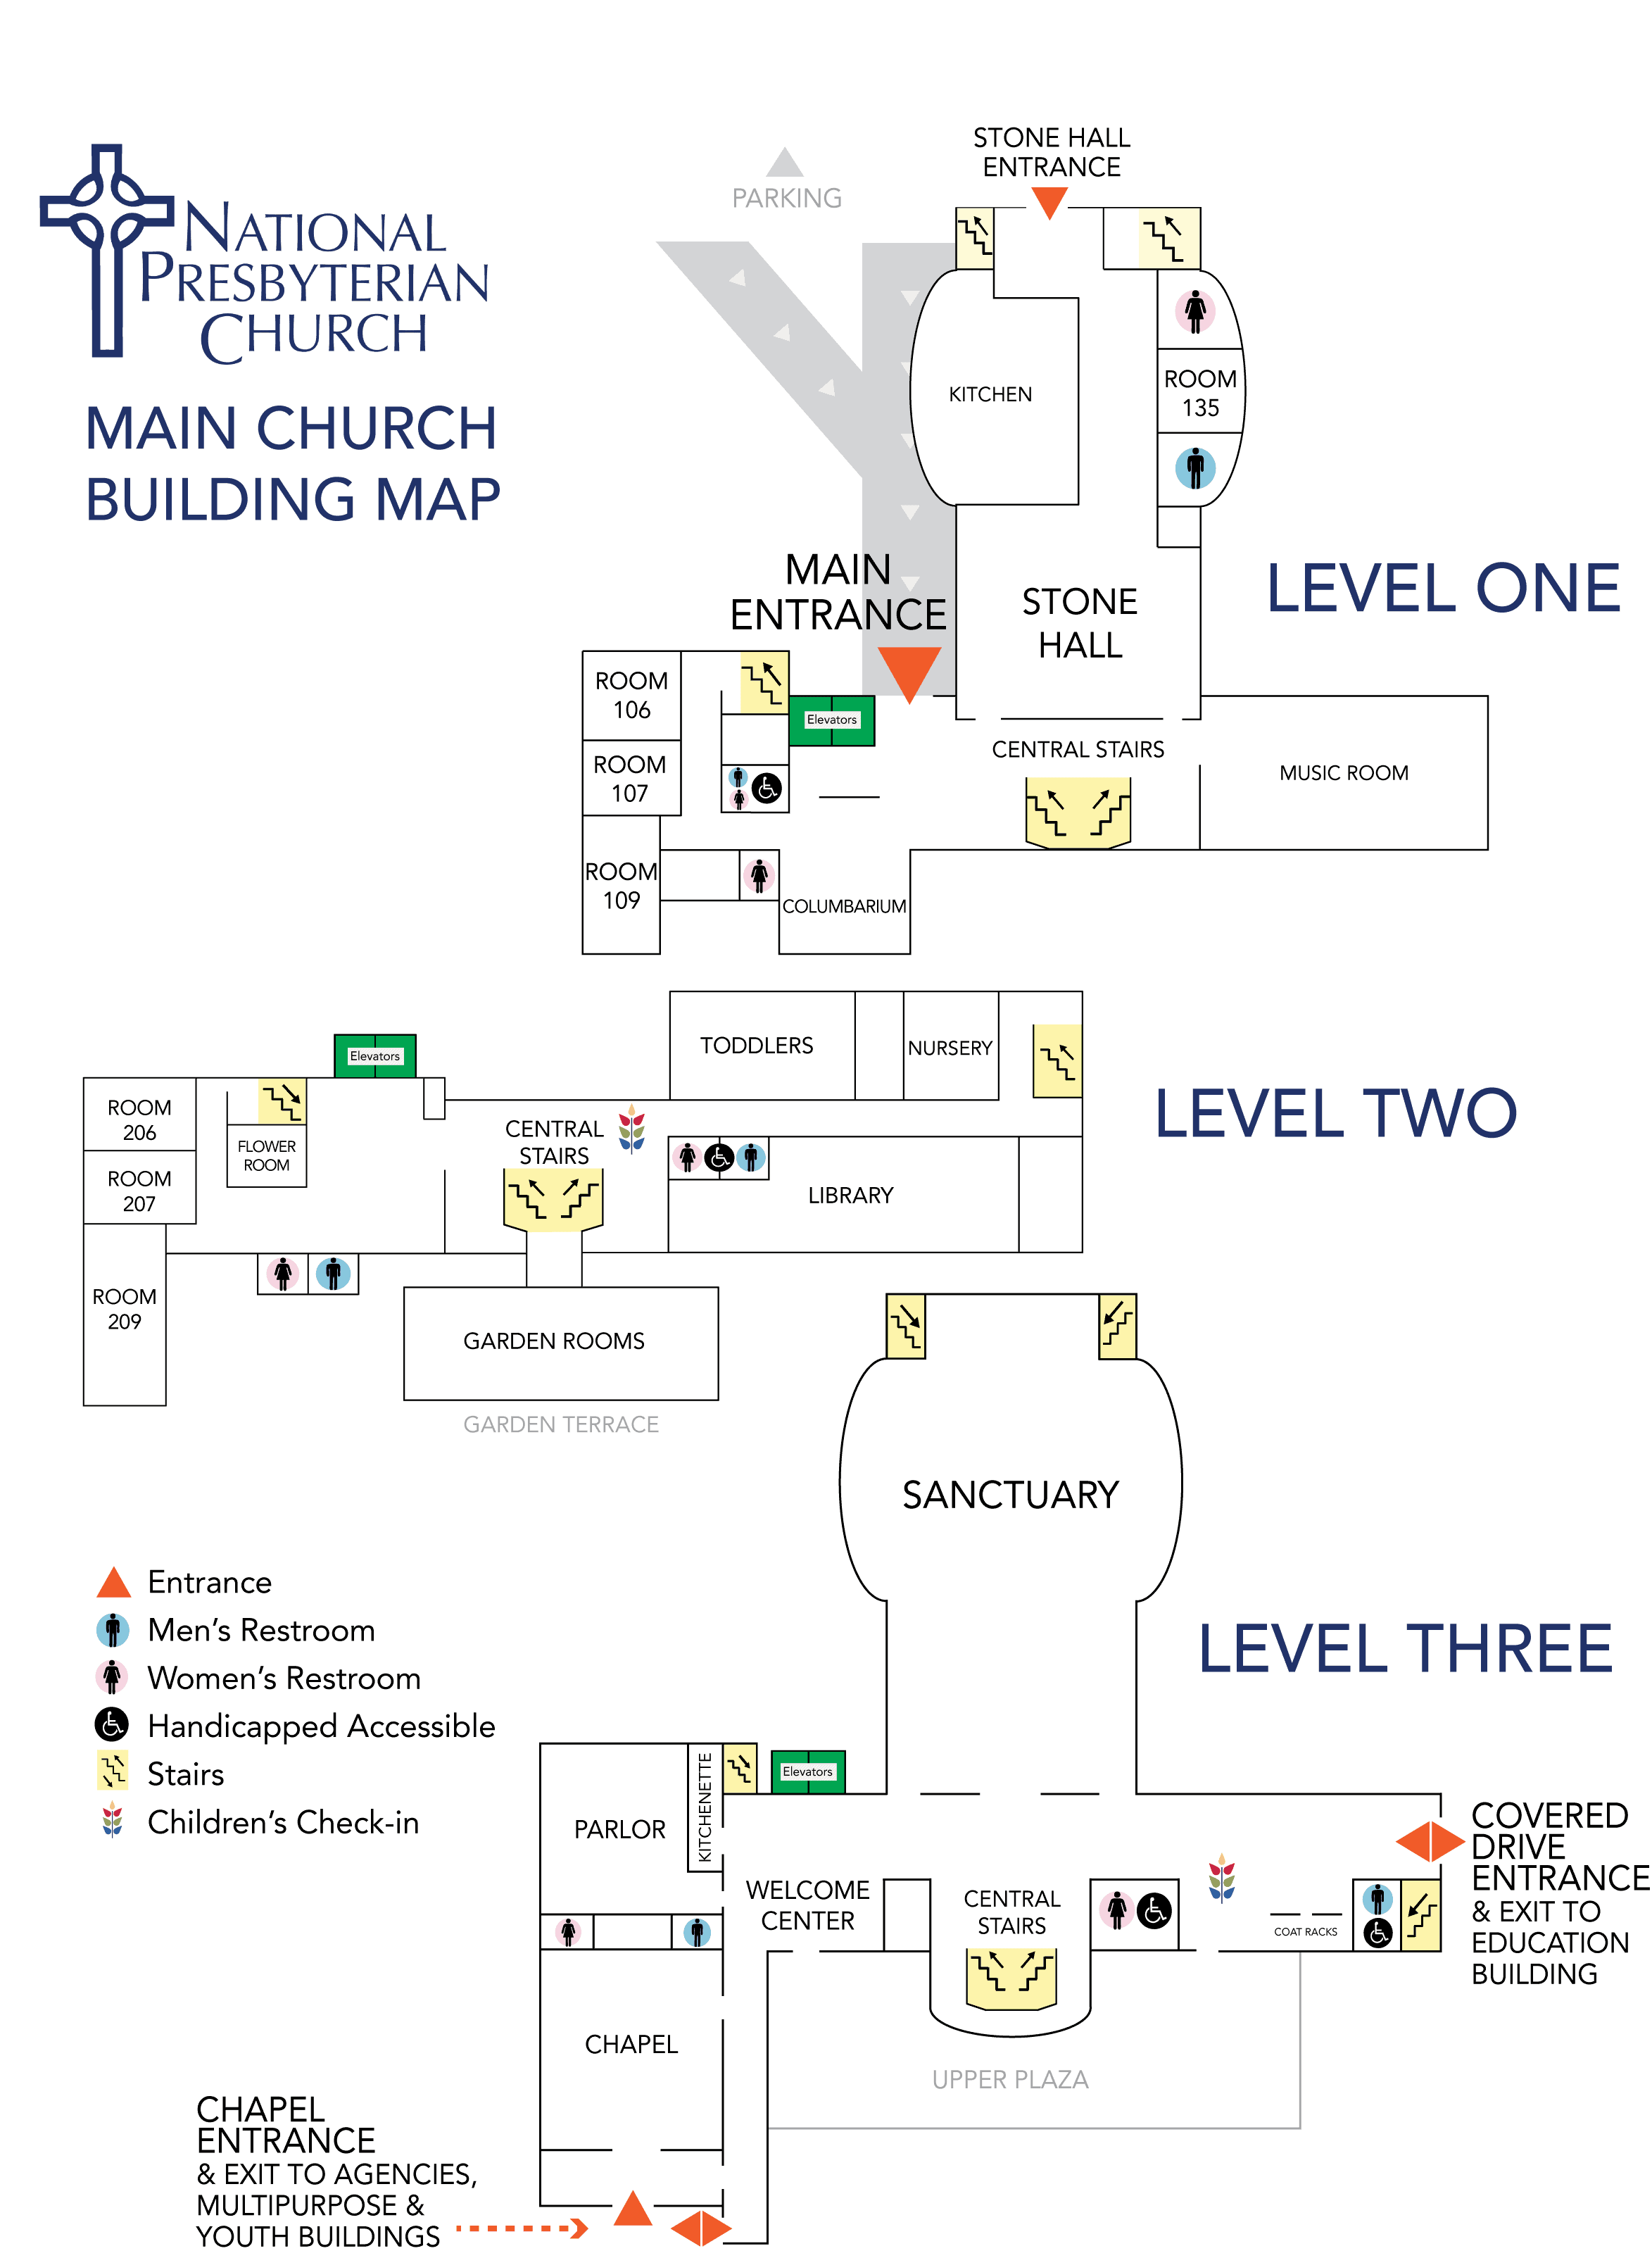 Church Building Map updated 9.22.21